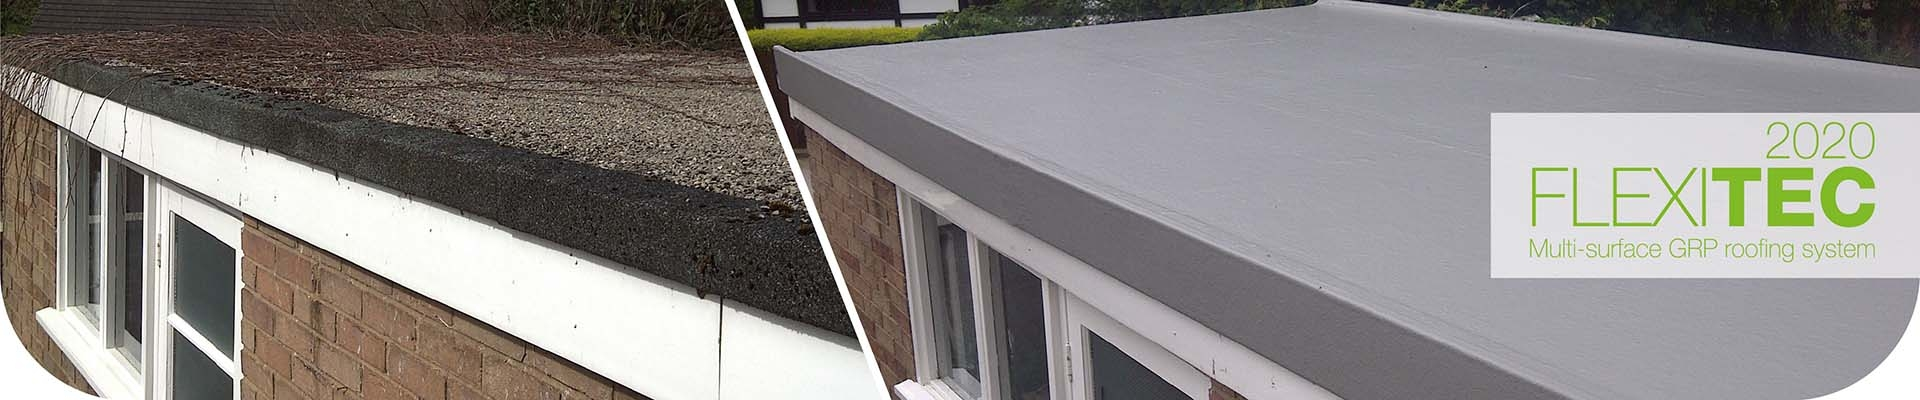 The First Flexible GRP Roofing System with Full Overlay Capabilities